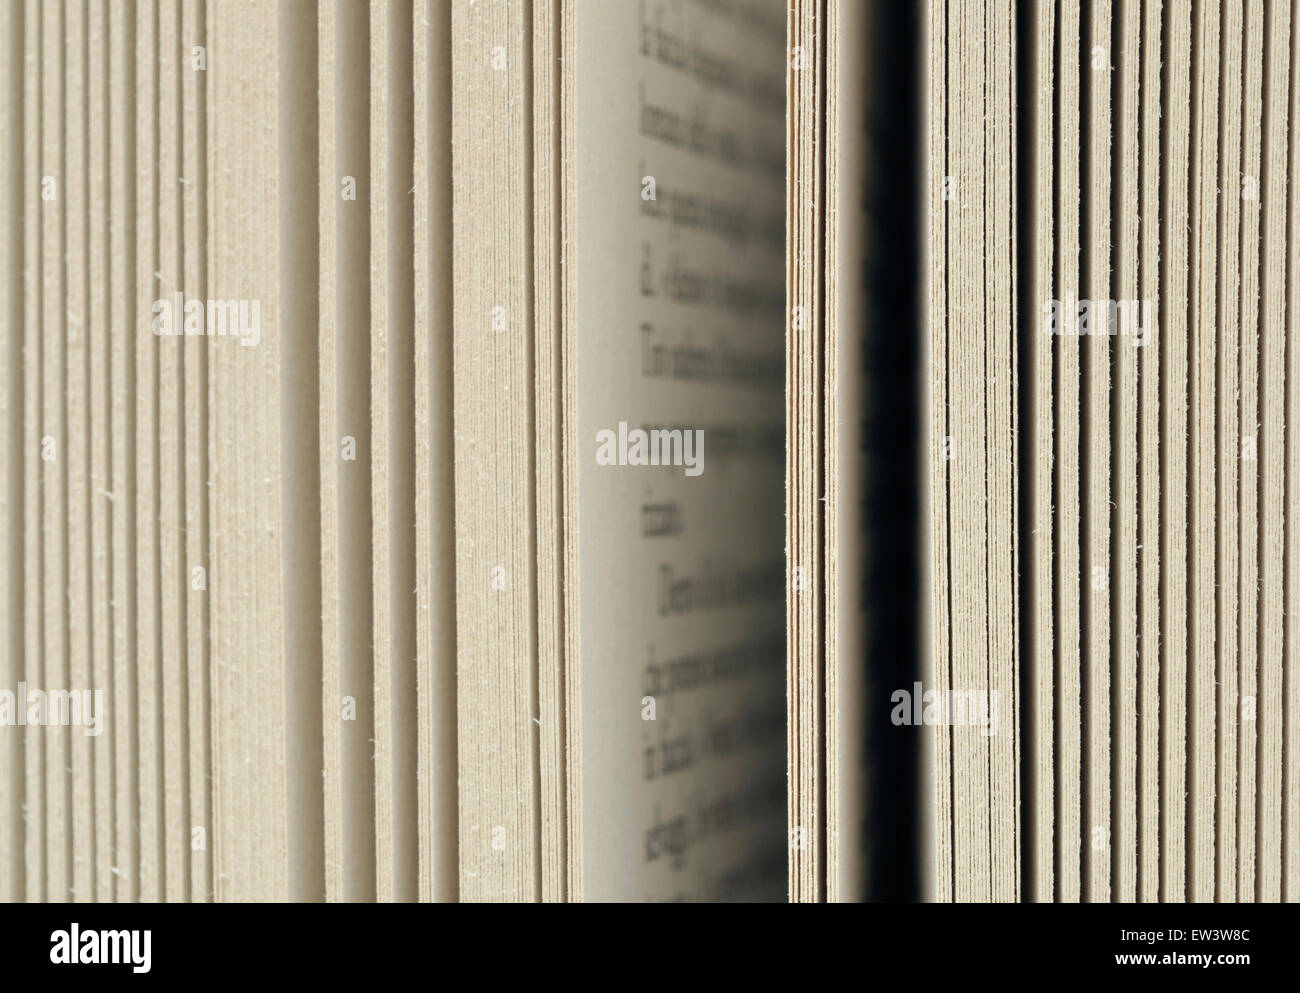 pages du livre Photo Stock